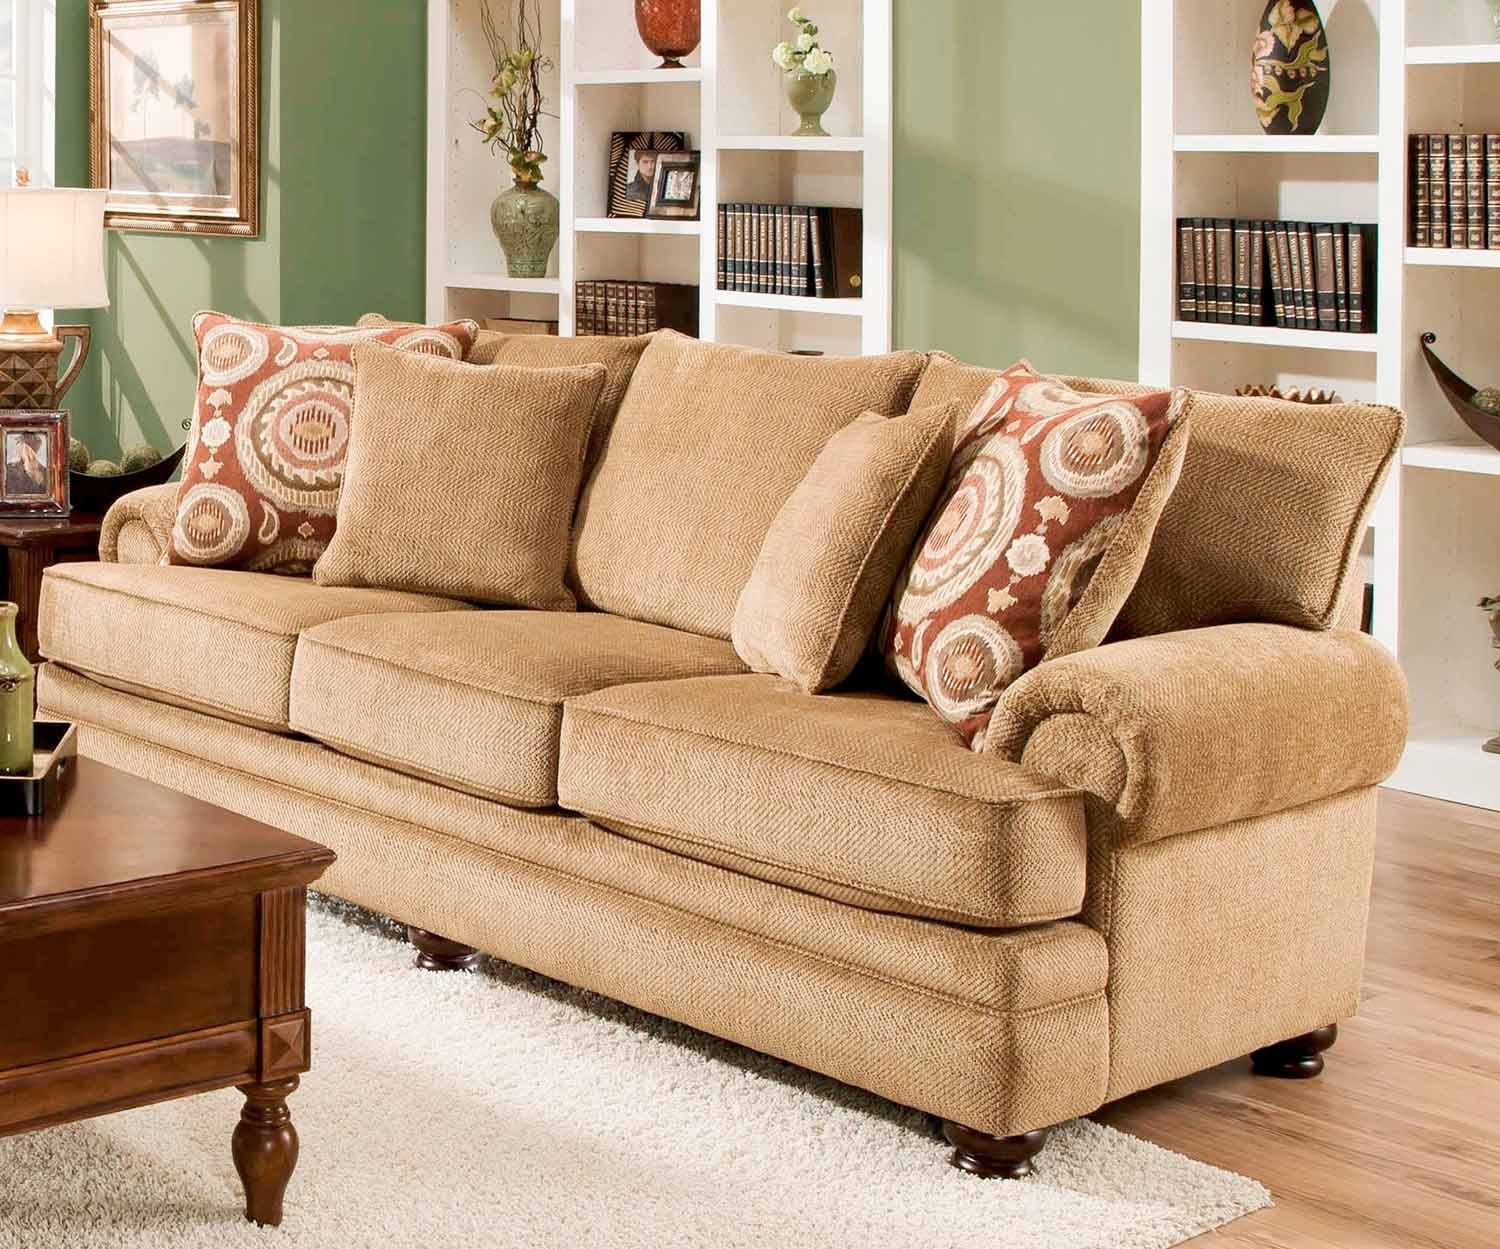 Chelsea Home Ria Sofa Set   Twill Green/Sumatra Cayenne